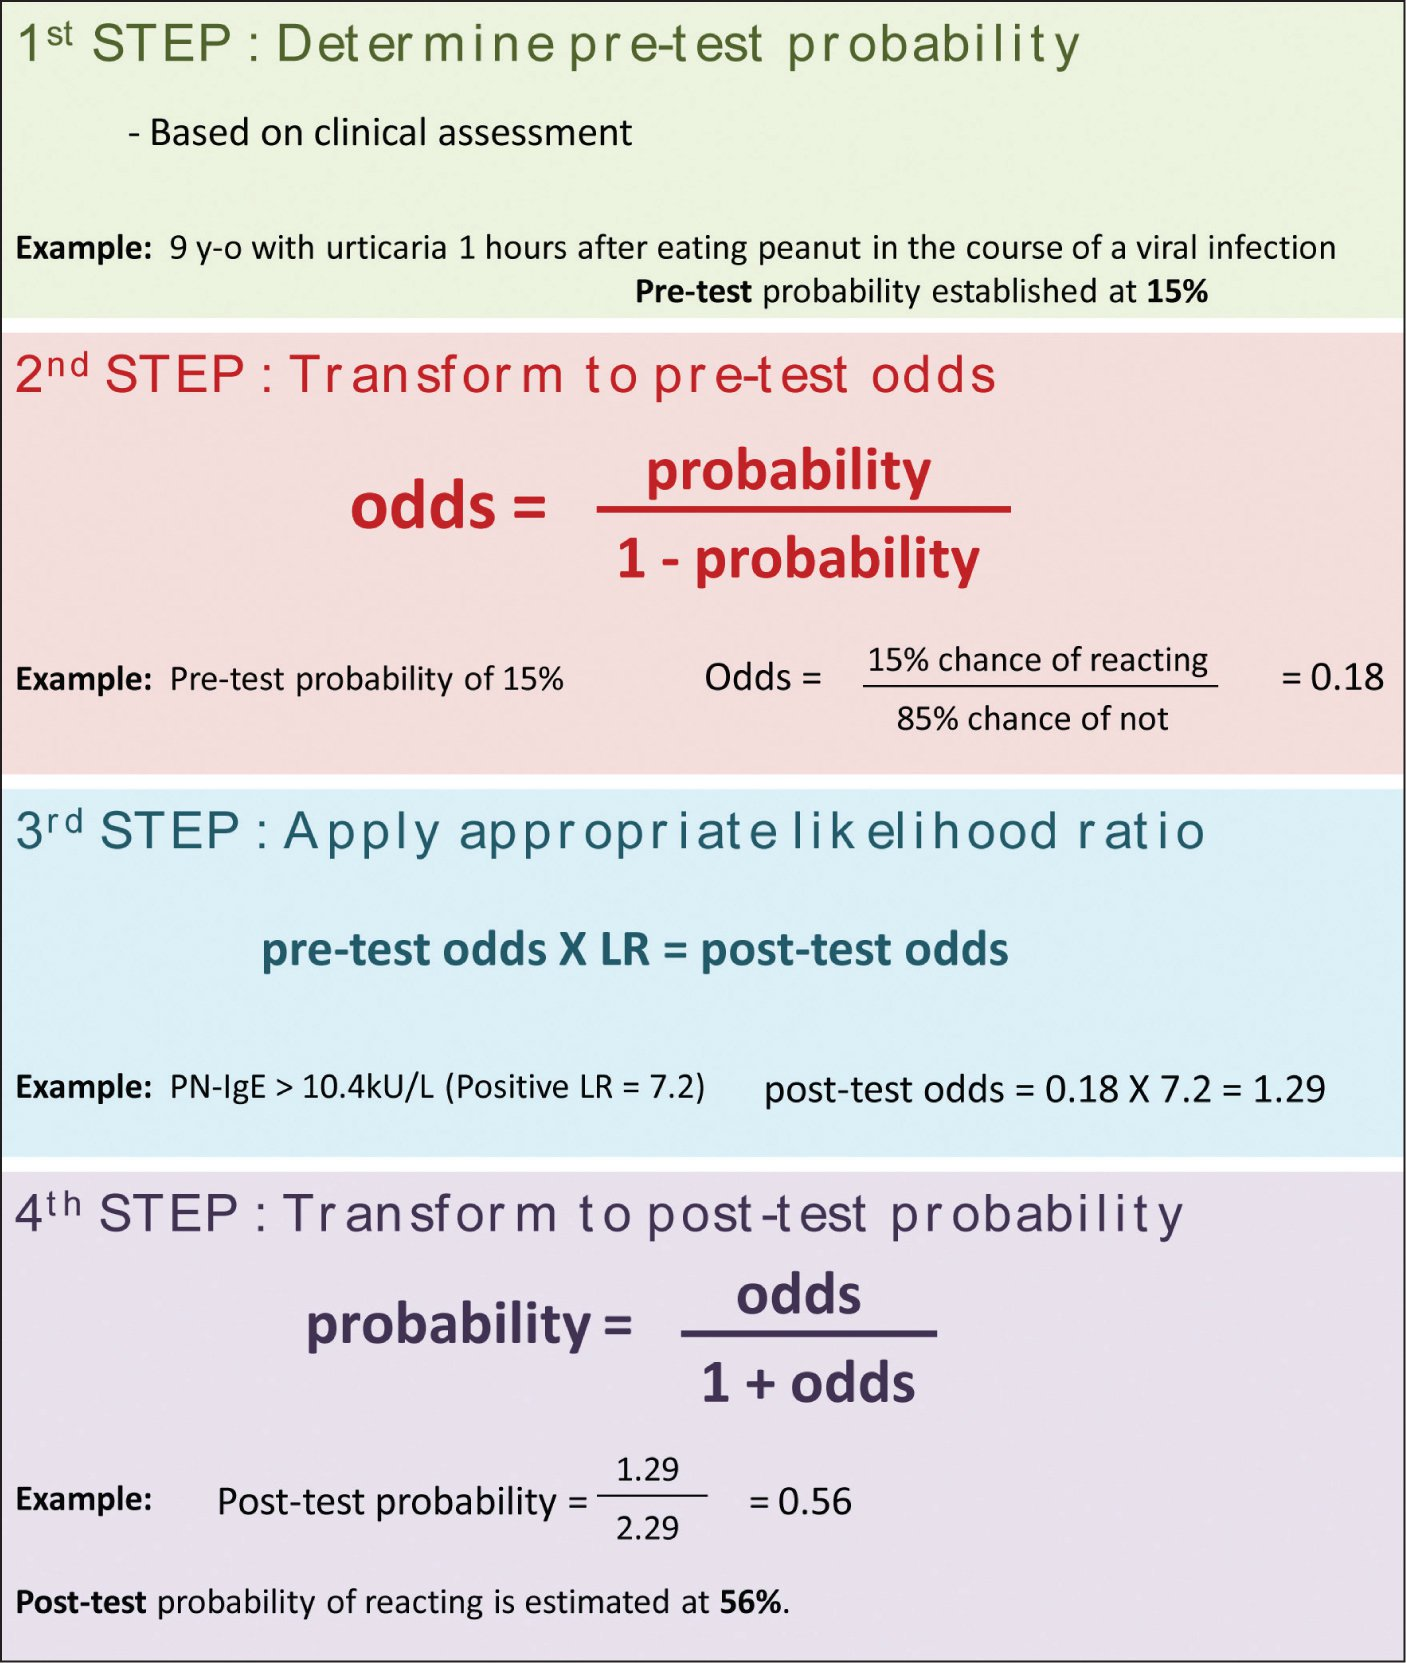 Calculating post-test probability.Figure courtesy of Philippe Bégin, MD, MSc, FRCPC.